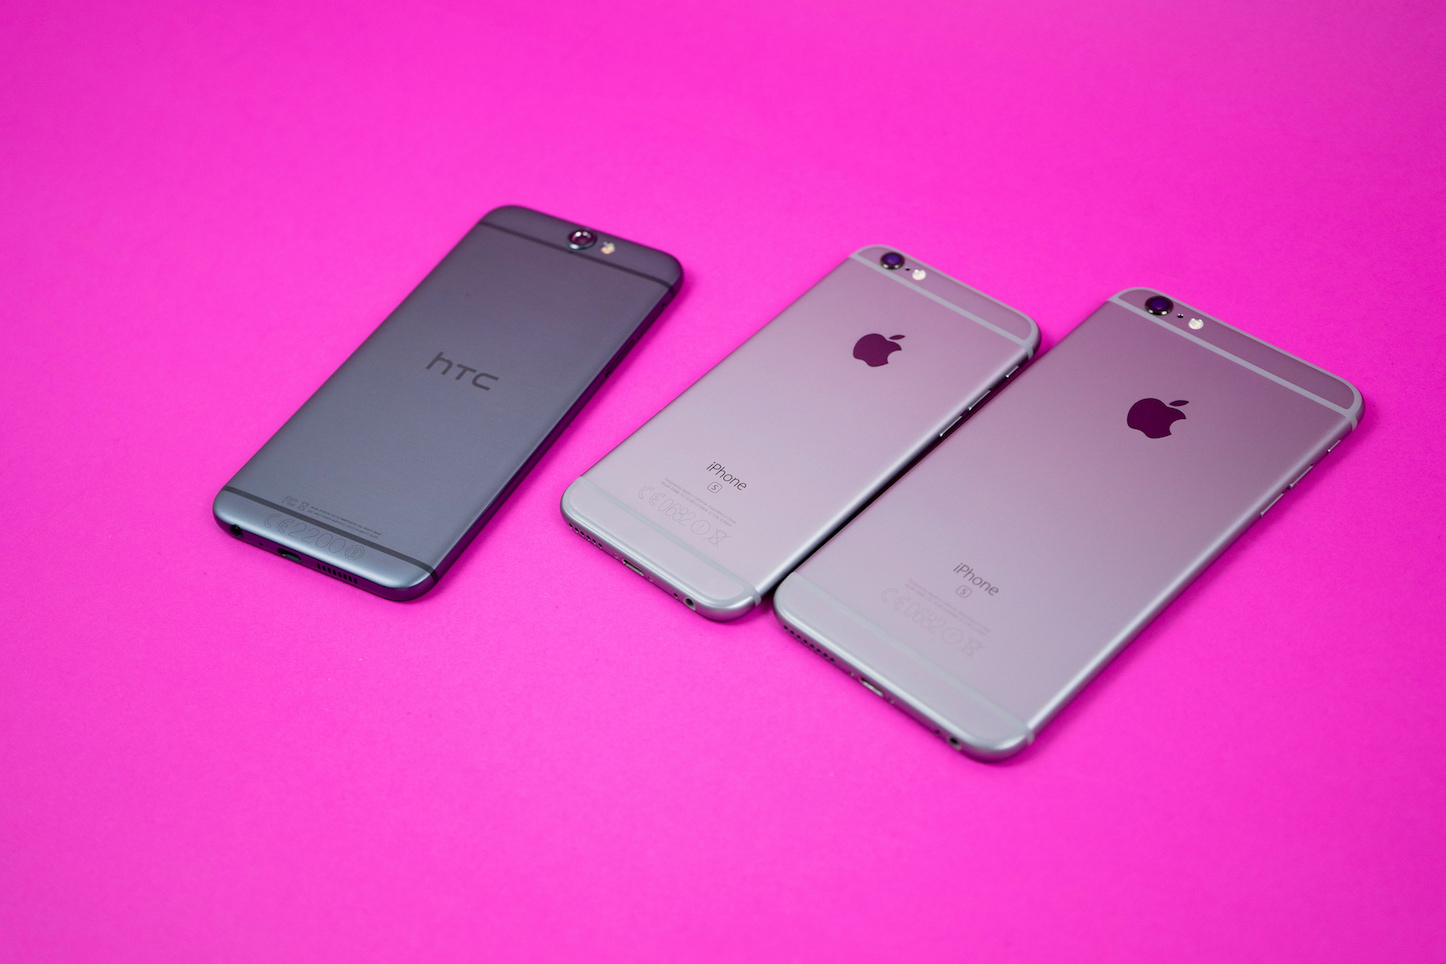 Htc one a9 and iphone6s